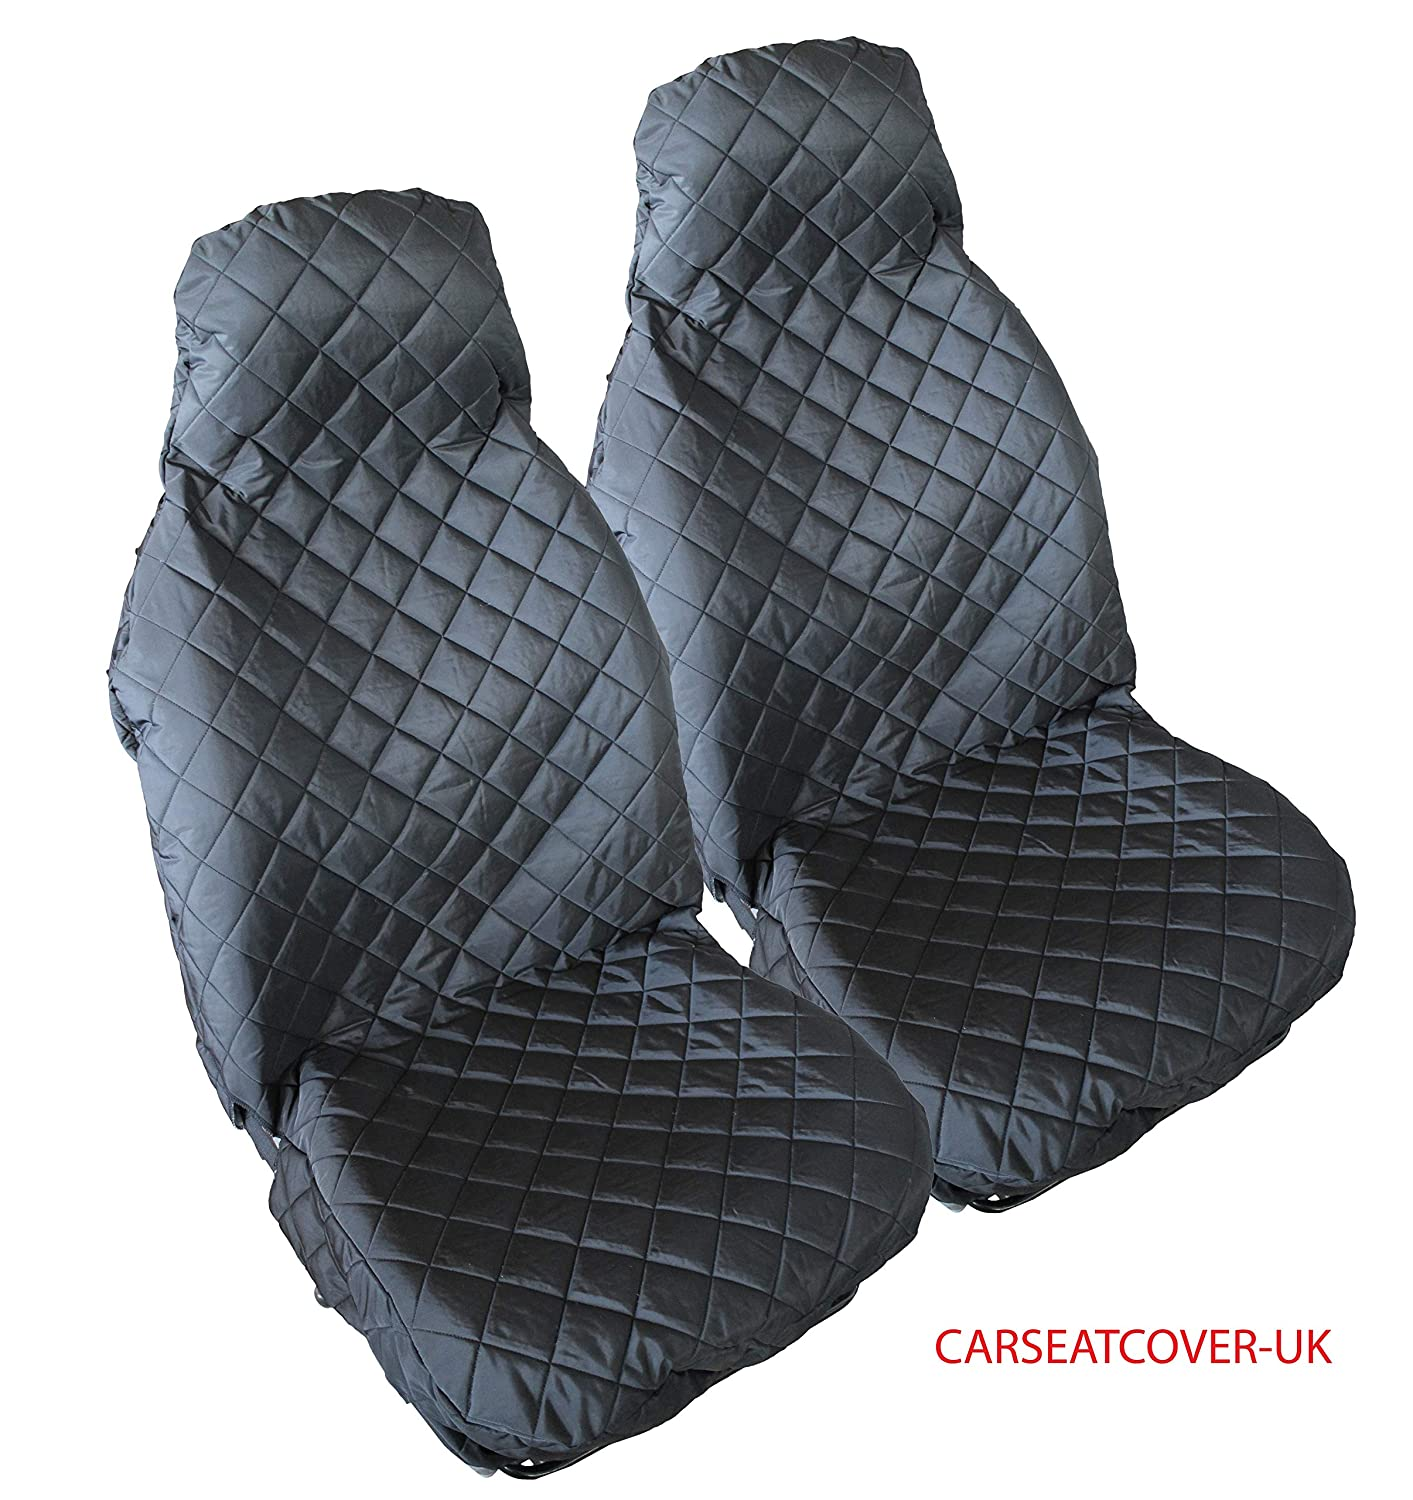 2 x Fronts Carseatcover-UK/® Super-Luxury Quilted PADDED Water Resistant Universal Seat COVERS Protectors